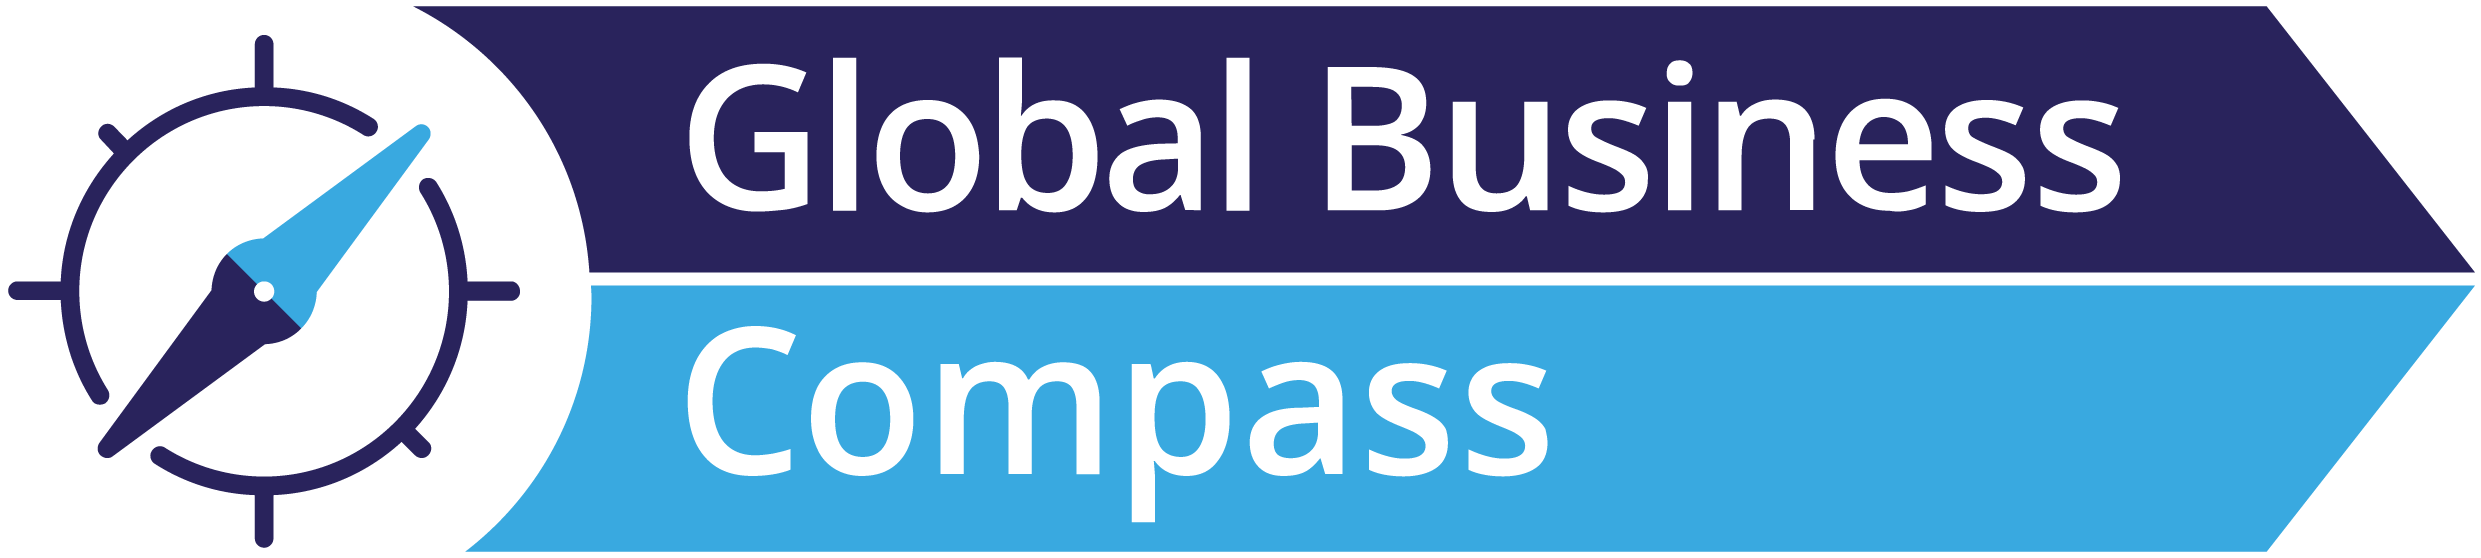 Global Business Compass